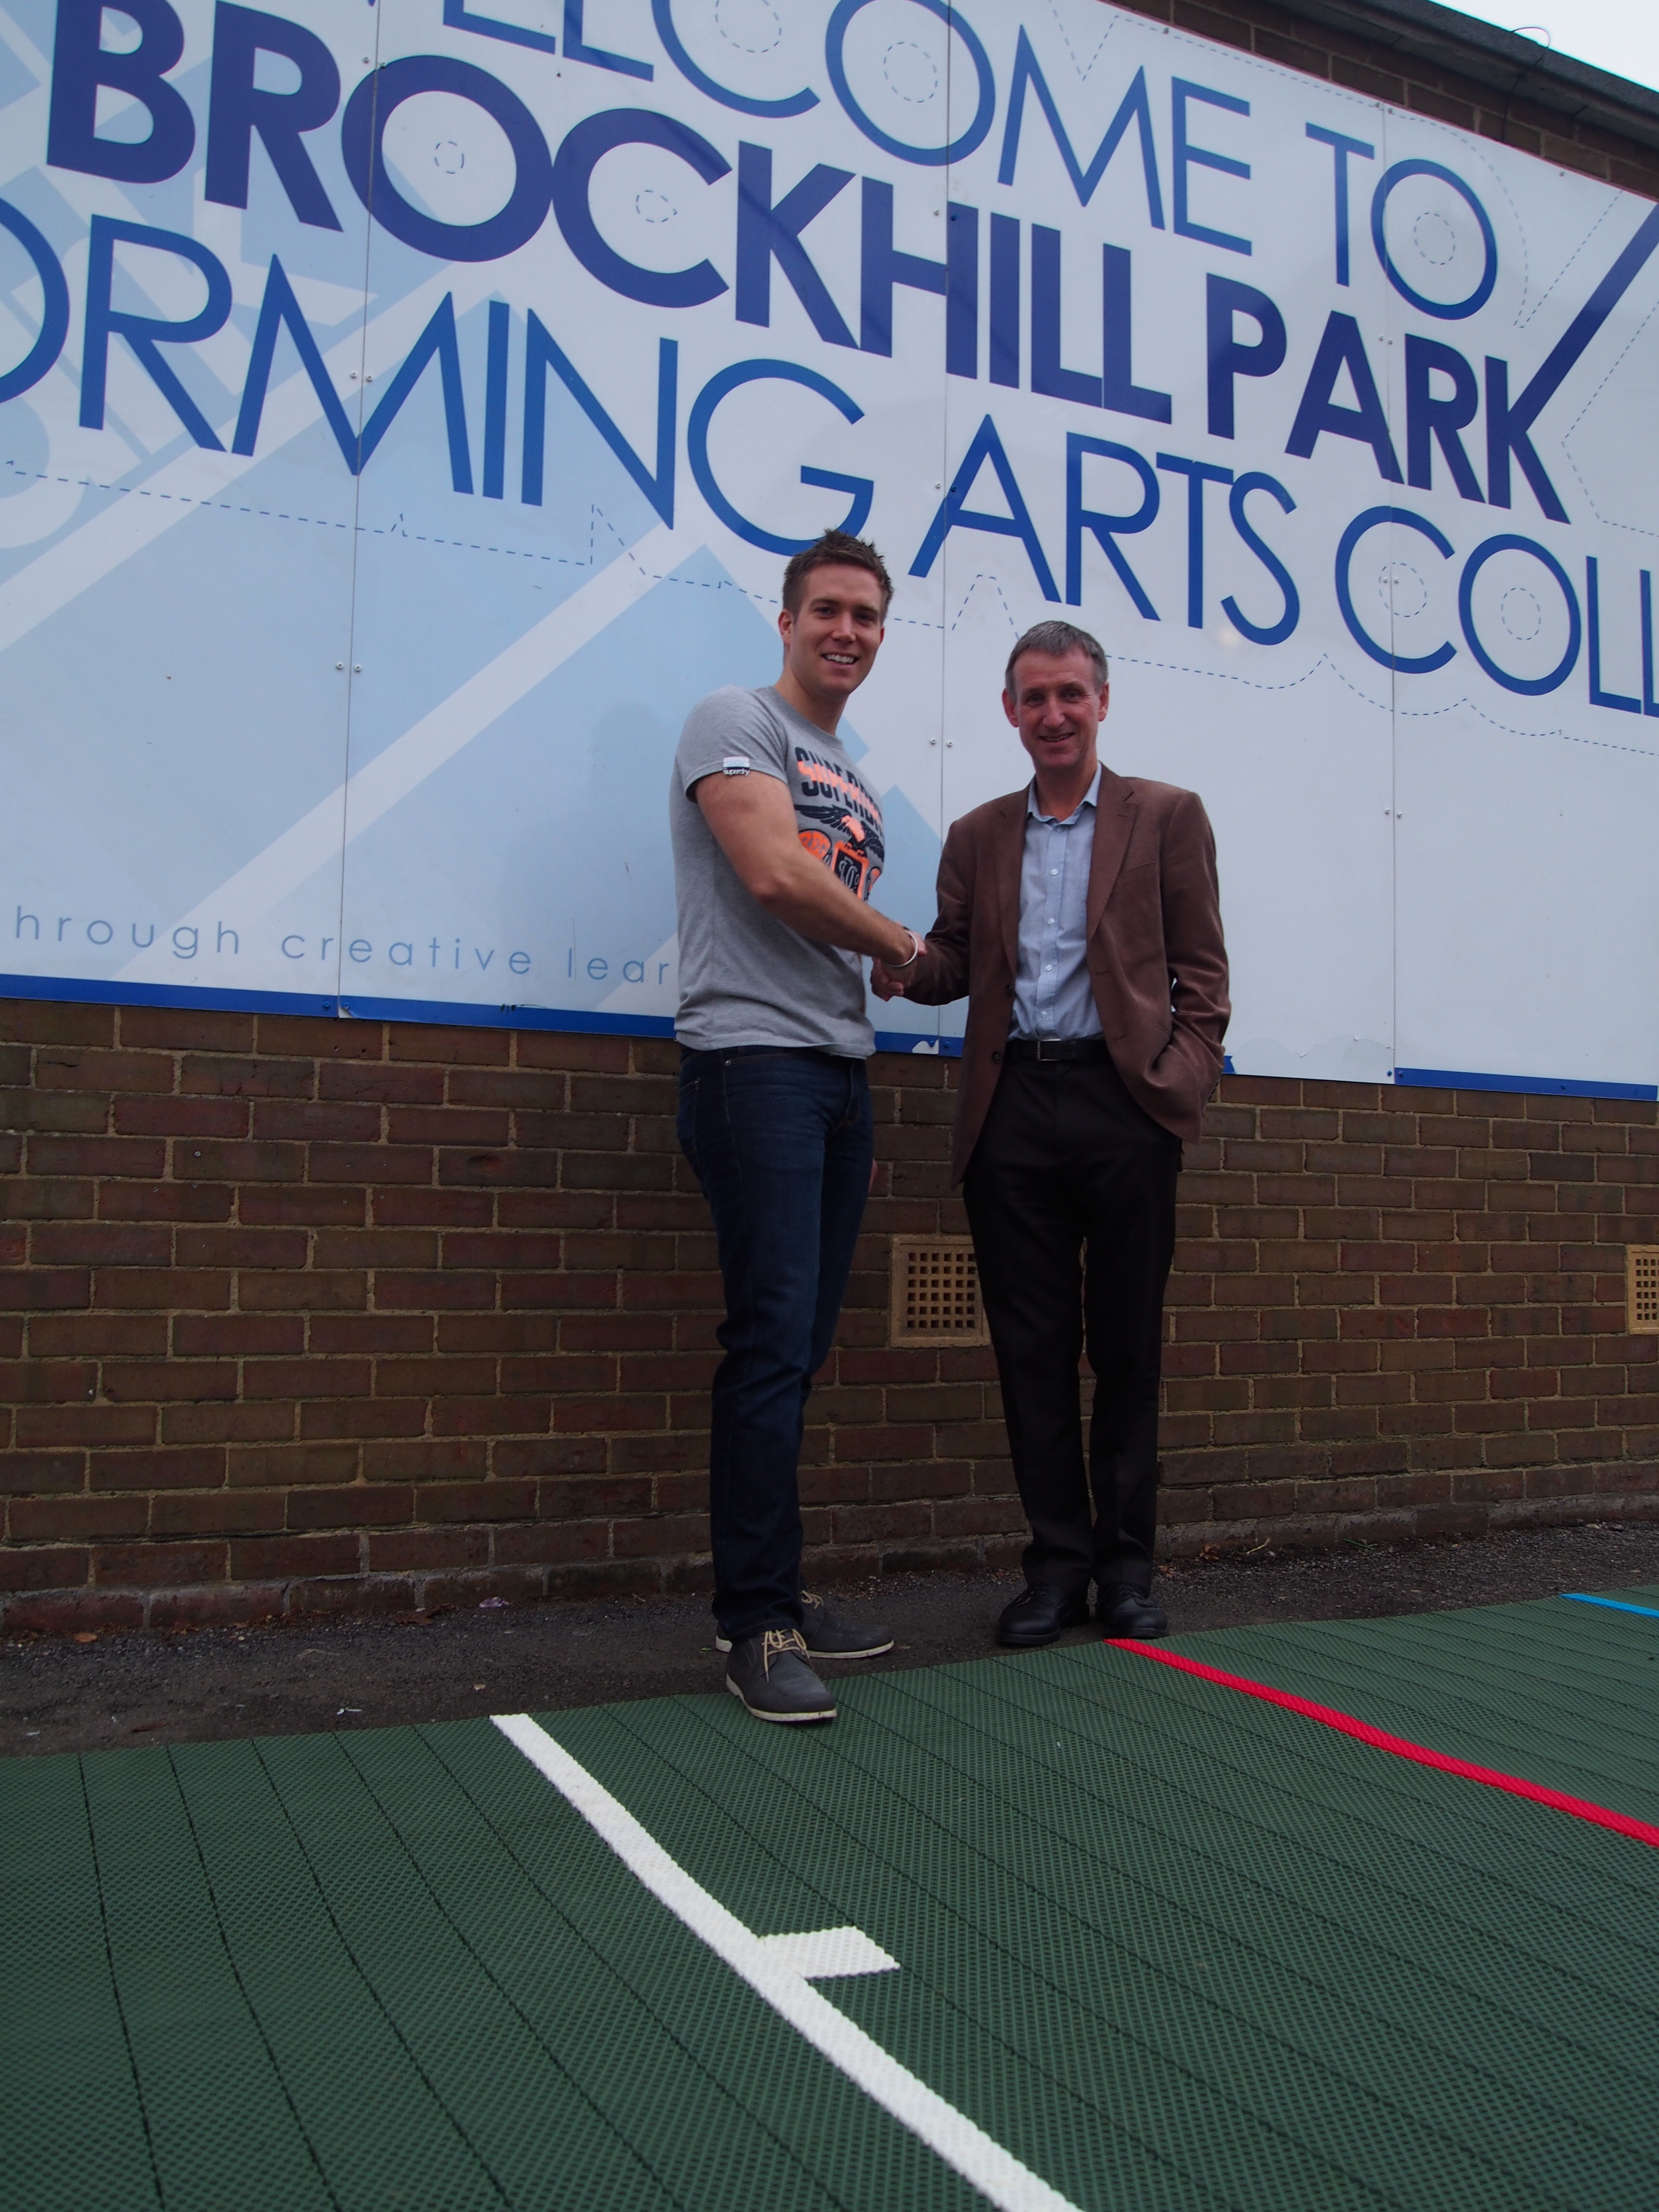 New Cricket Pitch for Brockhill Performing Arts College